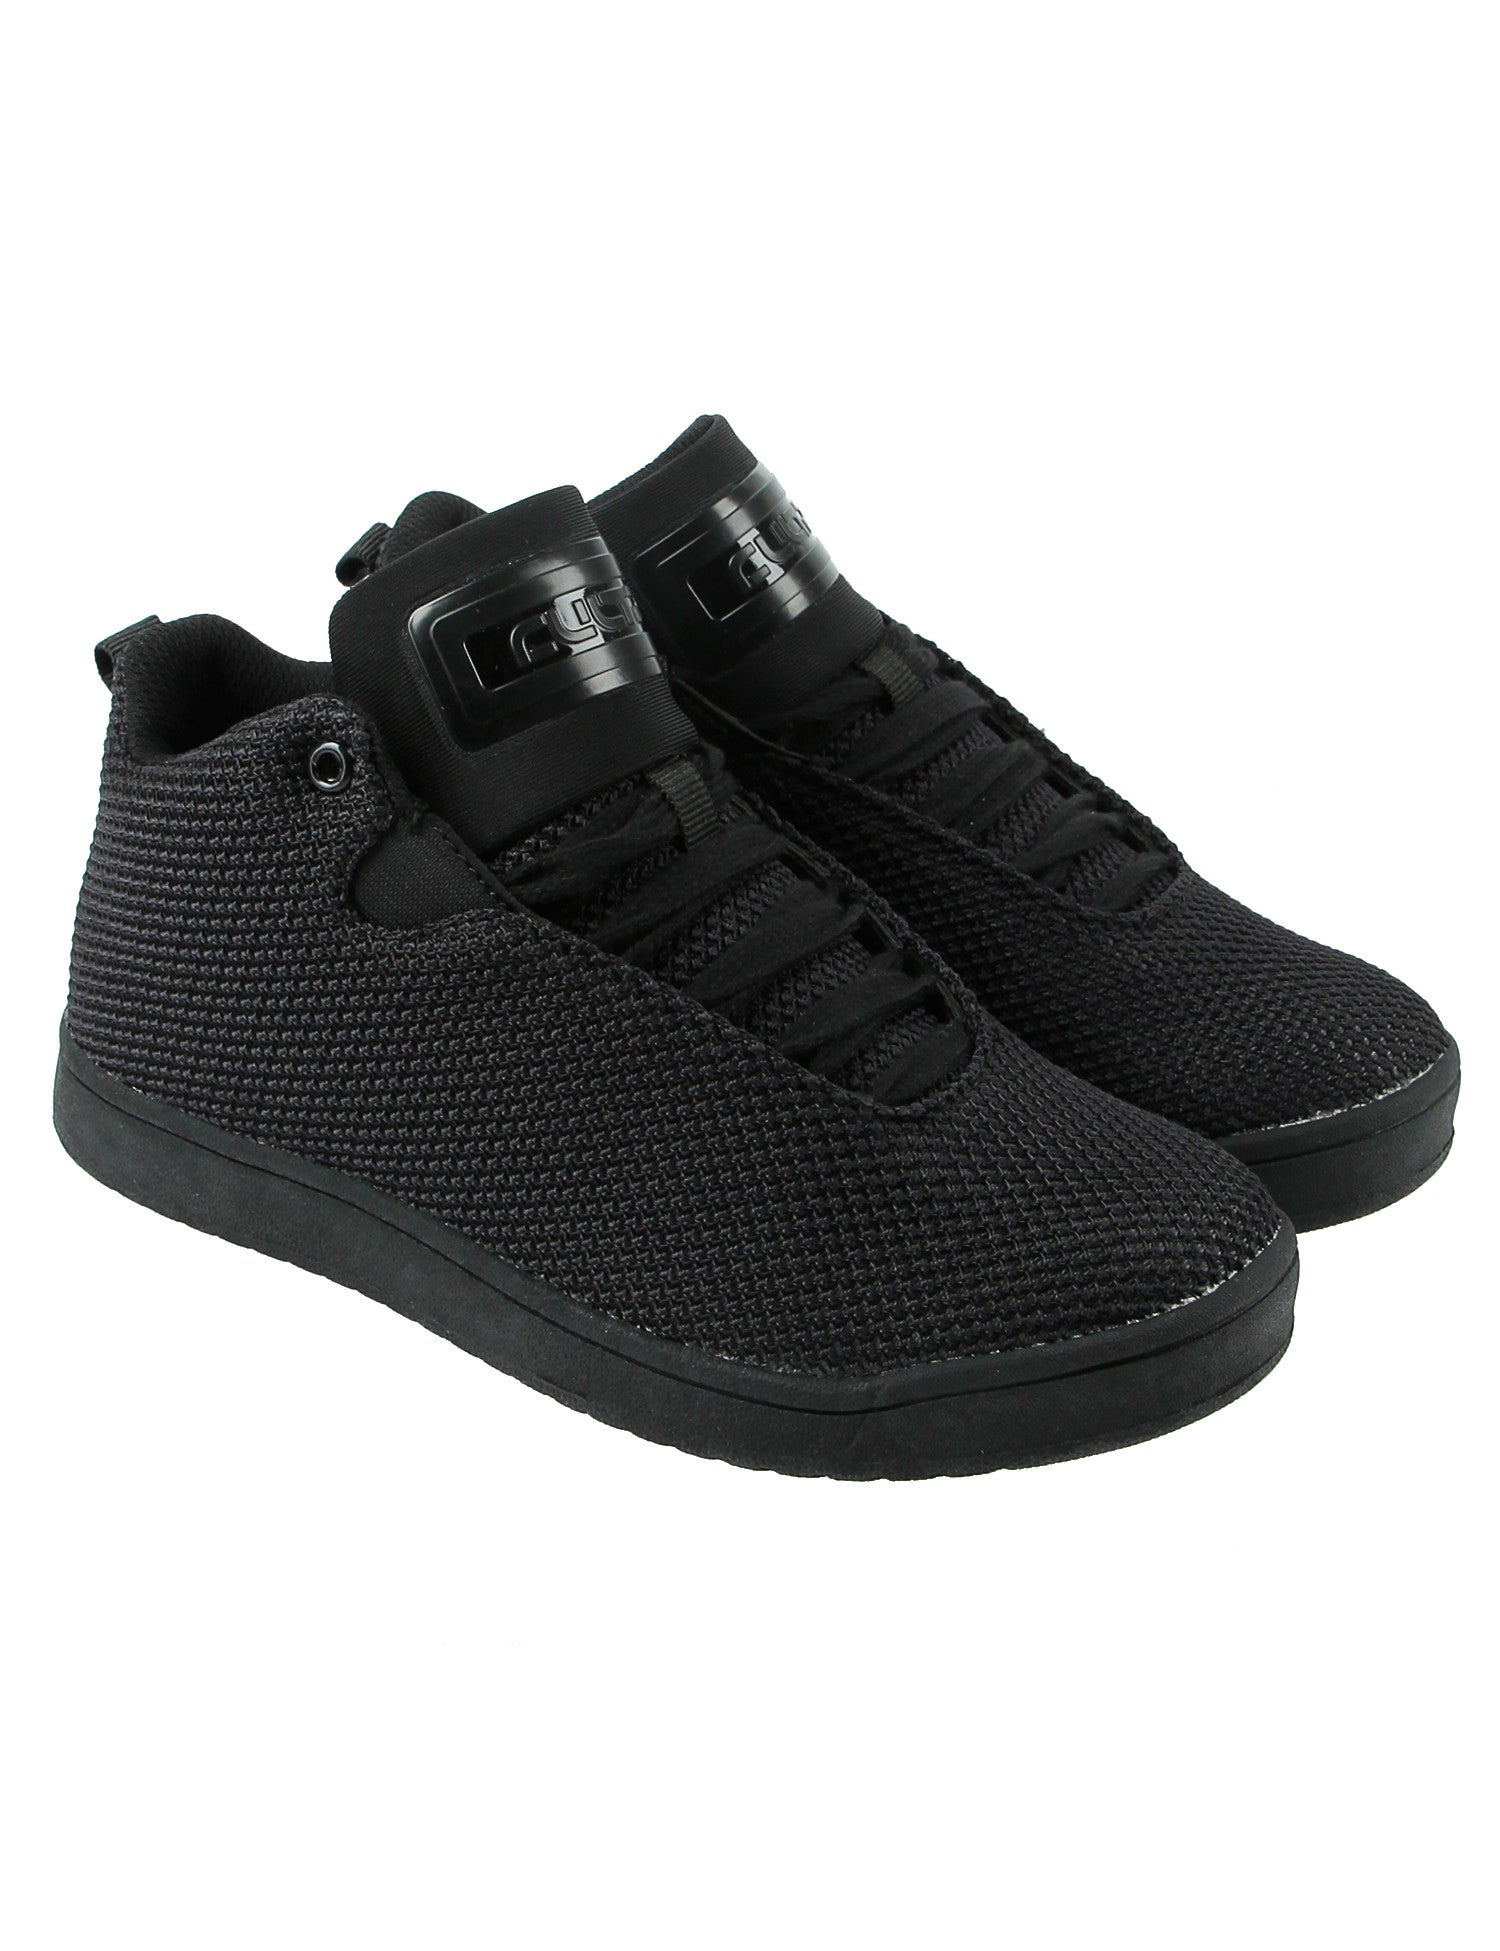 Cultz Mid Top Kids Shoes 150301-4W Black